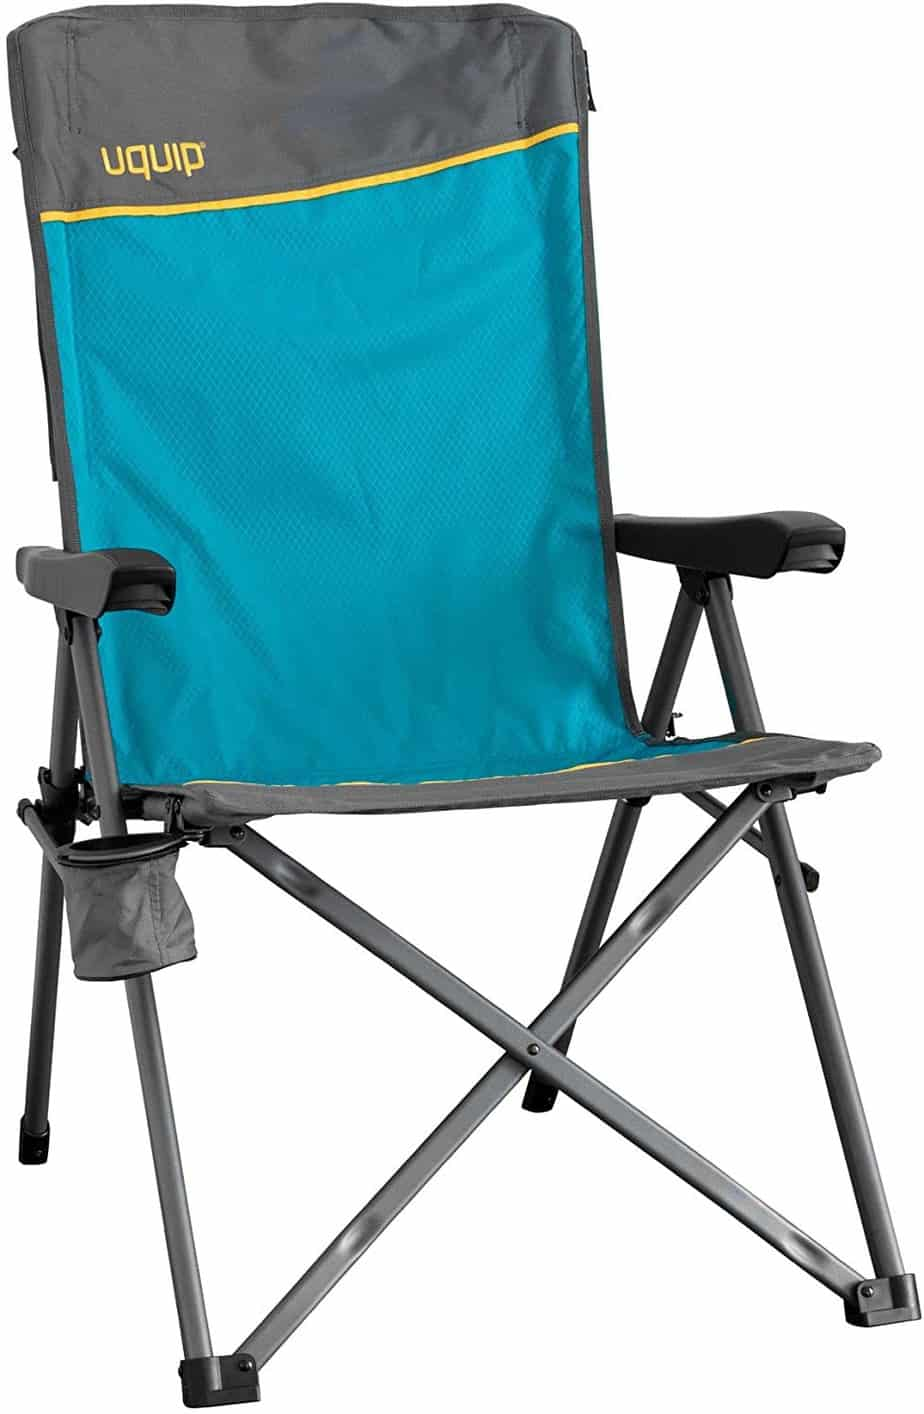 9. Uquip Justy Reclining Camping Chair